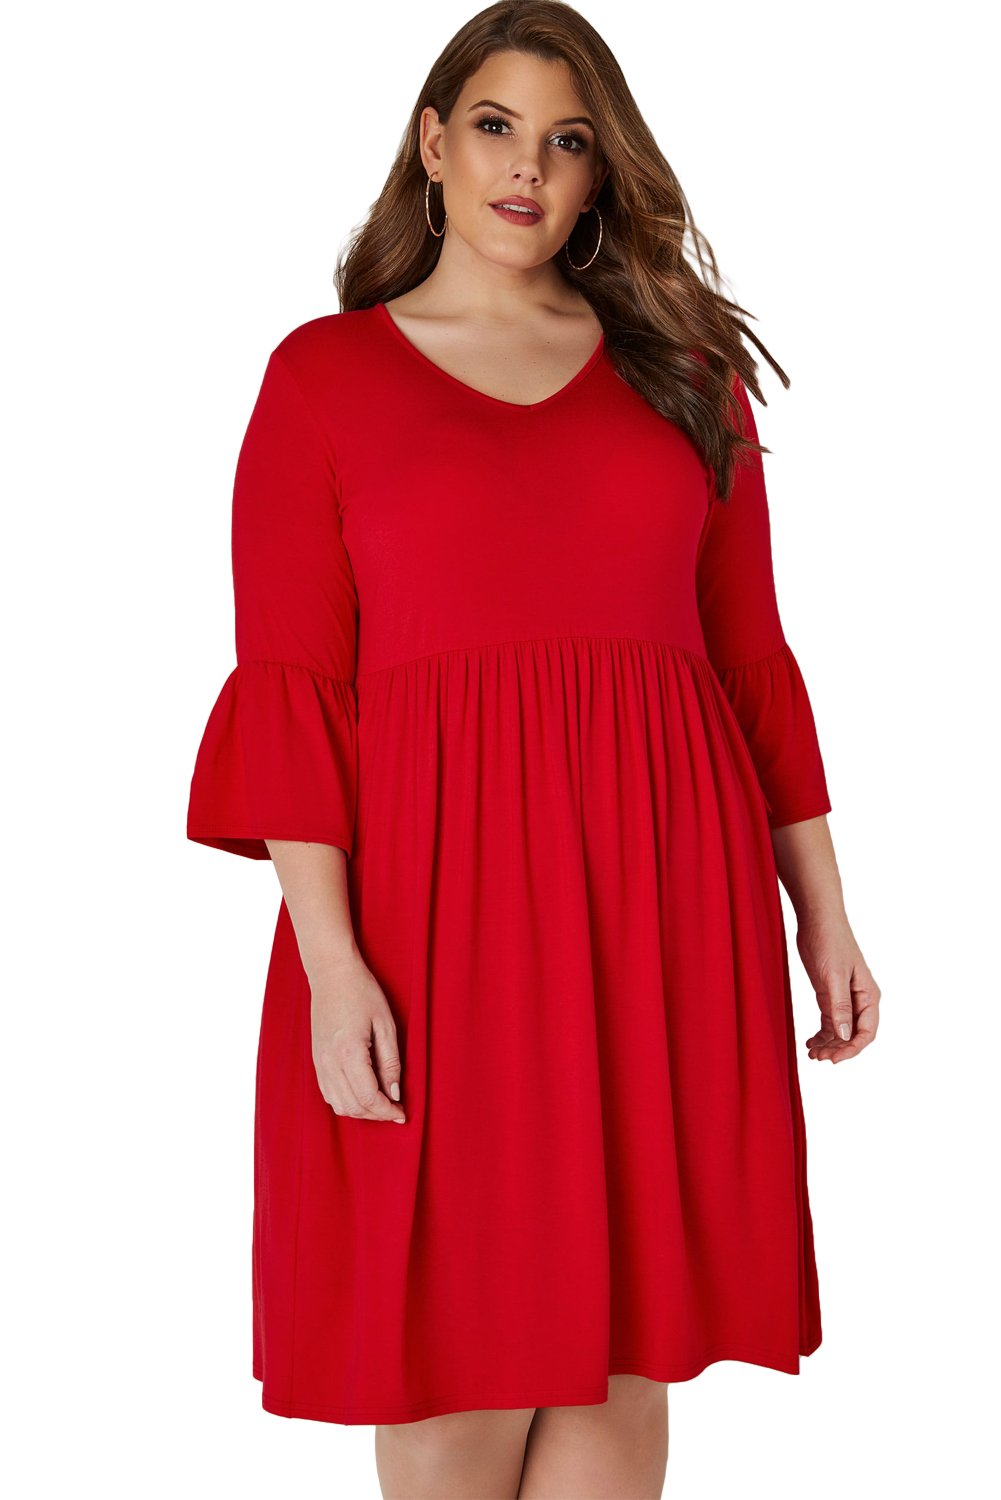 Red Flute Sleeves Plus Size Jersey Dress